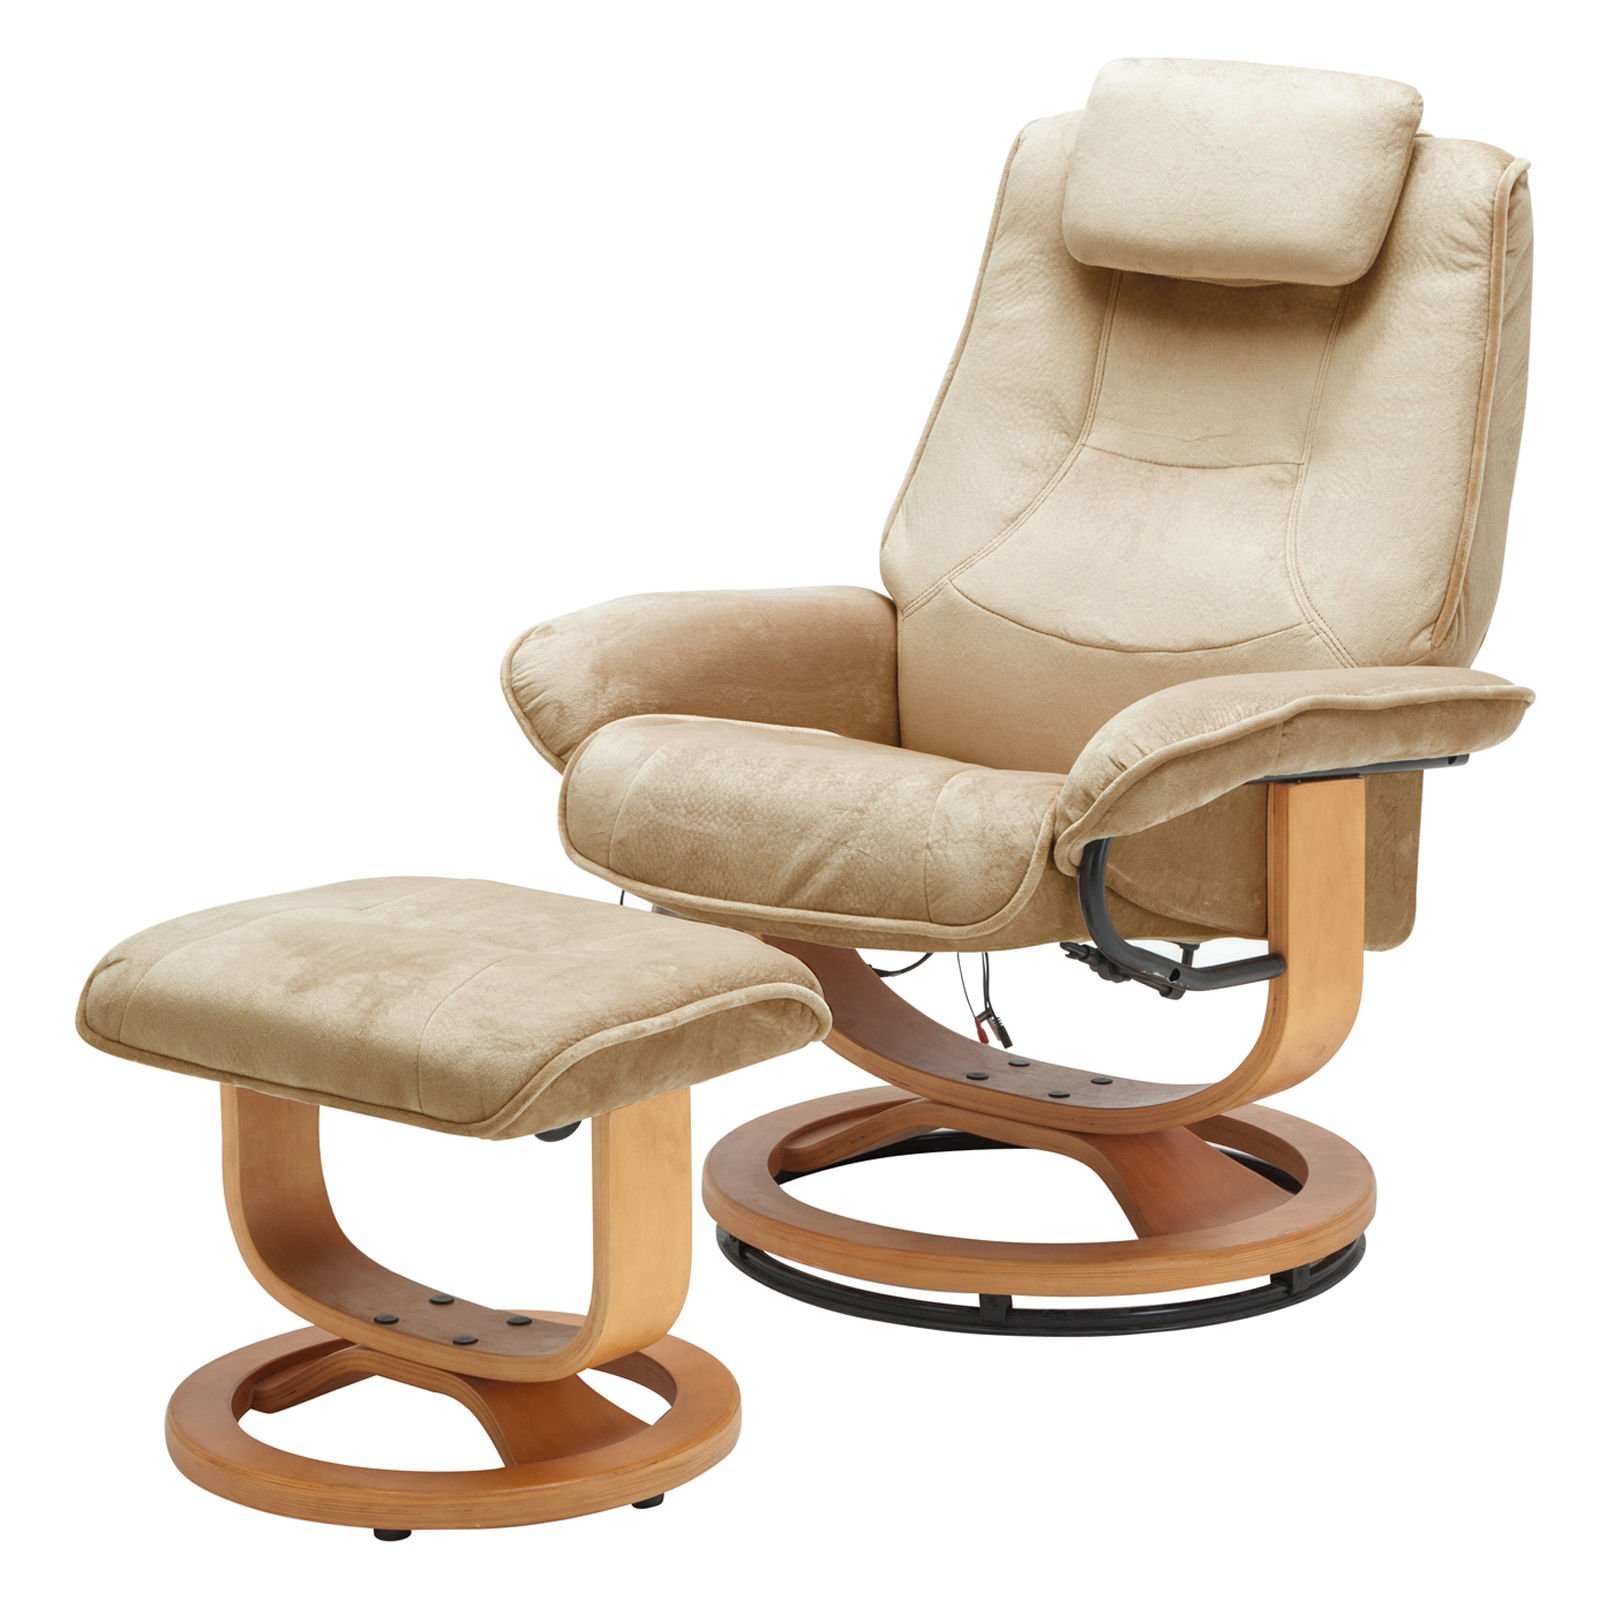 Leisure Recliner Chair 8 Motor Massage Armchair with Ottoman Footstool in Brown